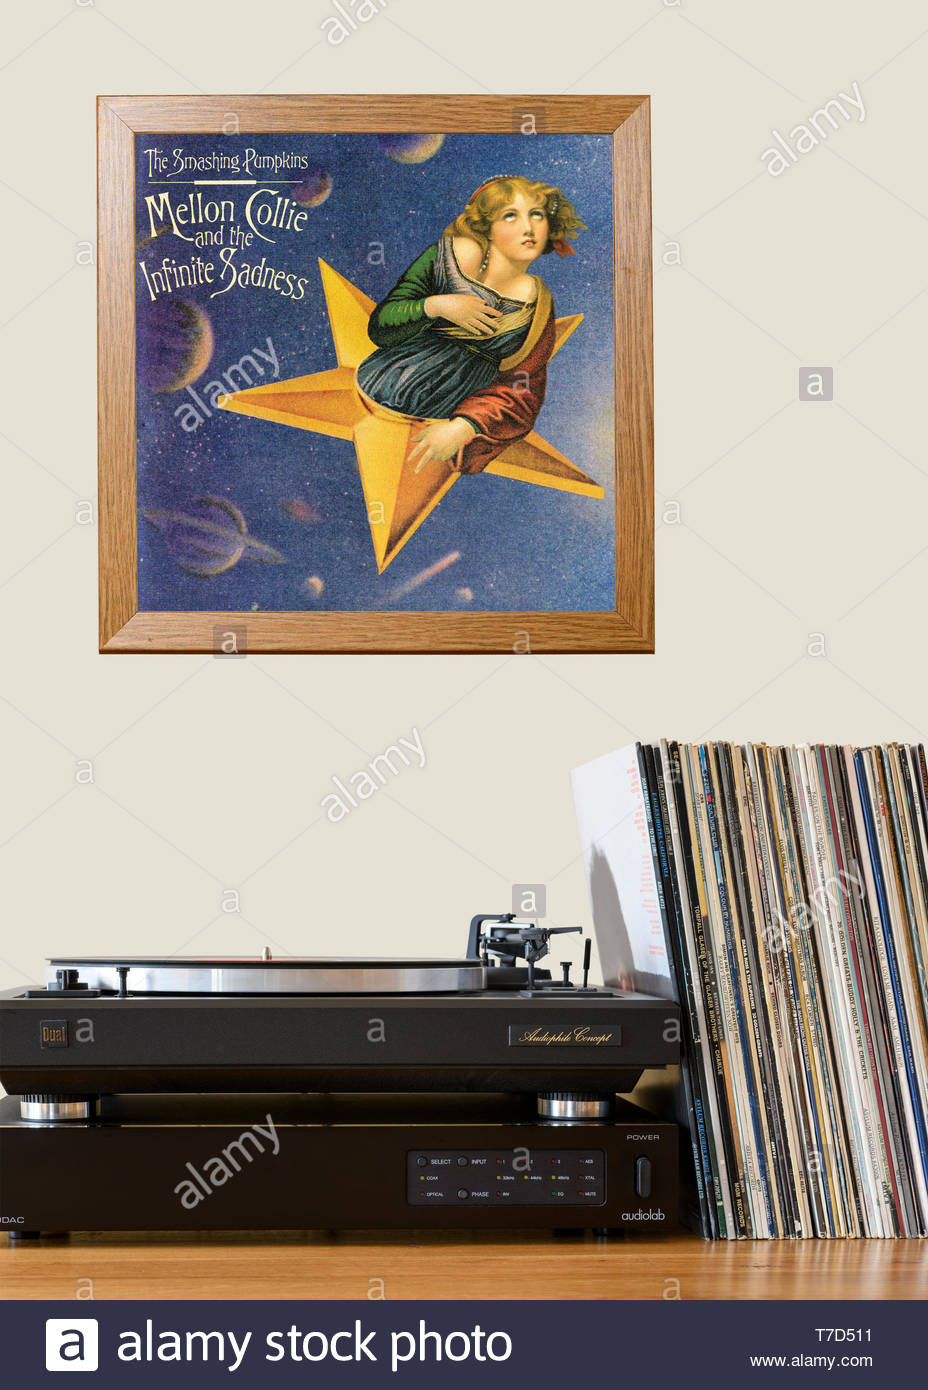 The Smashing Pumpkins, Mellon Collie and the Infinite Sadness Record player and framed album cover, England - Stock Image